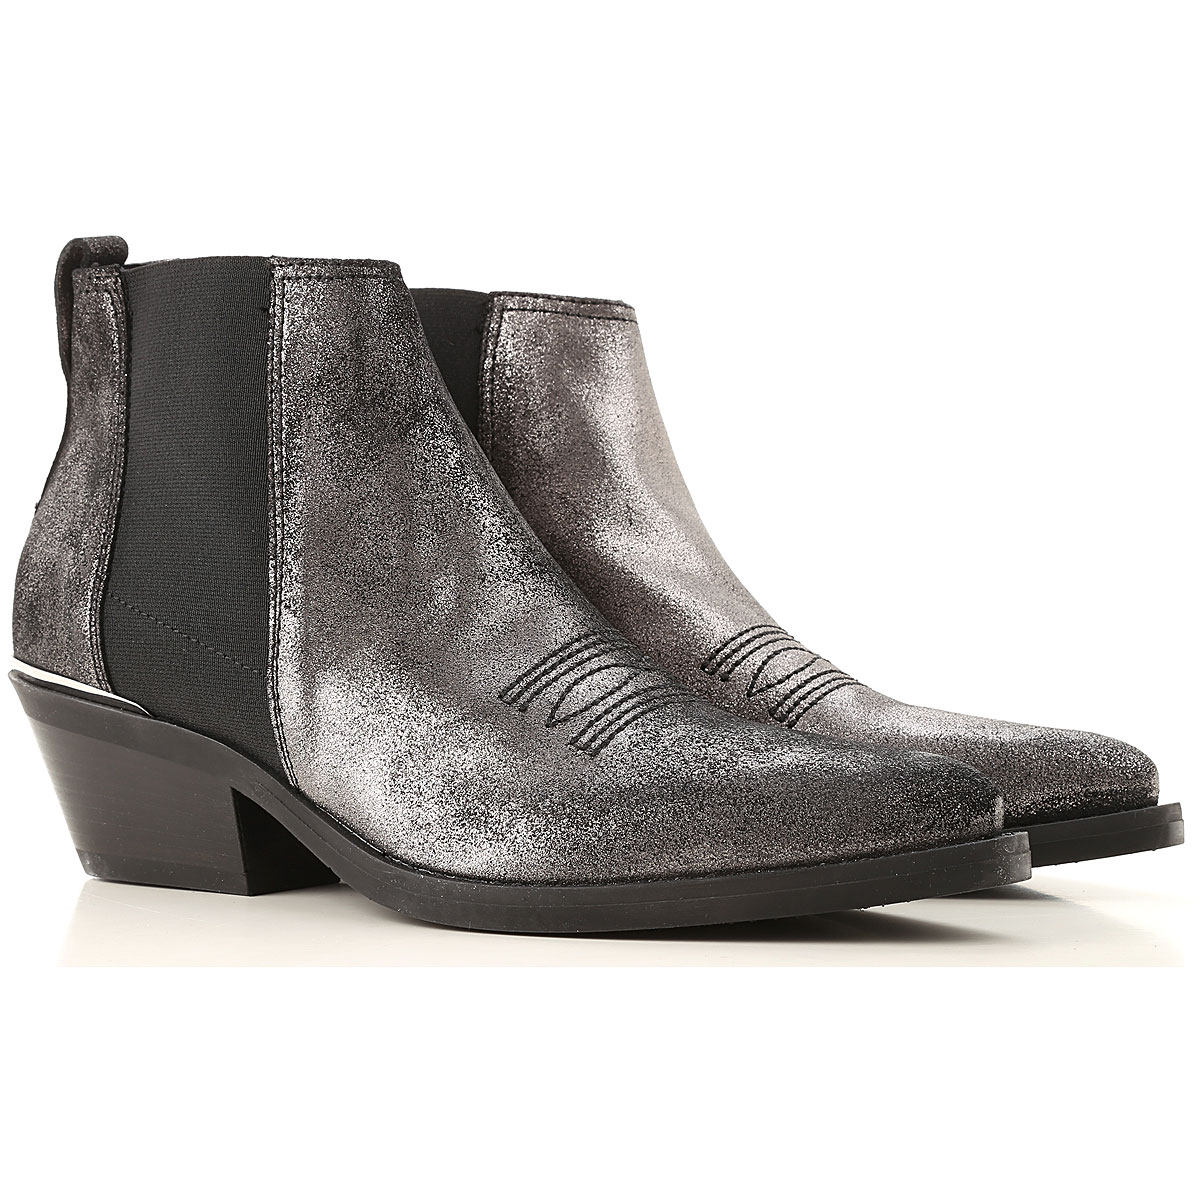 Janet & Janet Chelsea Boots for Women On Sale, Gunmetal, Leather, 2019, 6 7 8 9